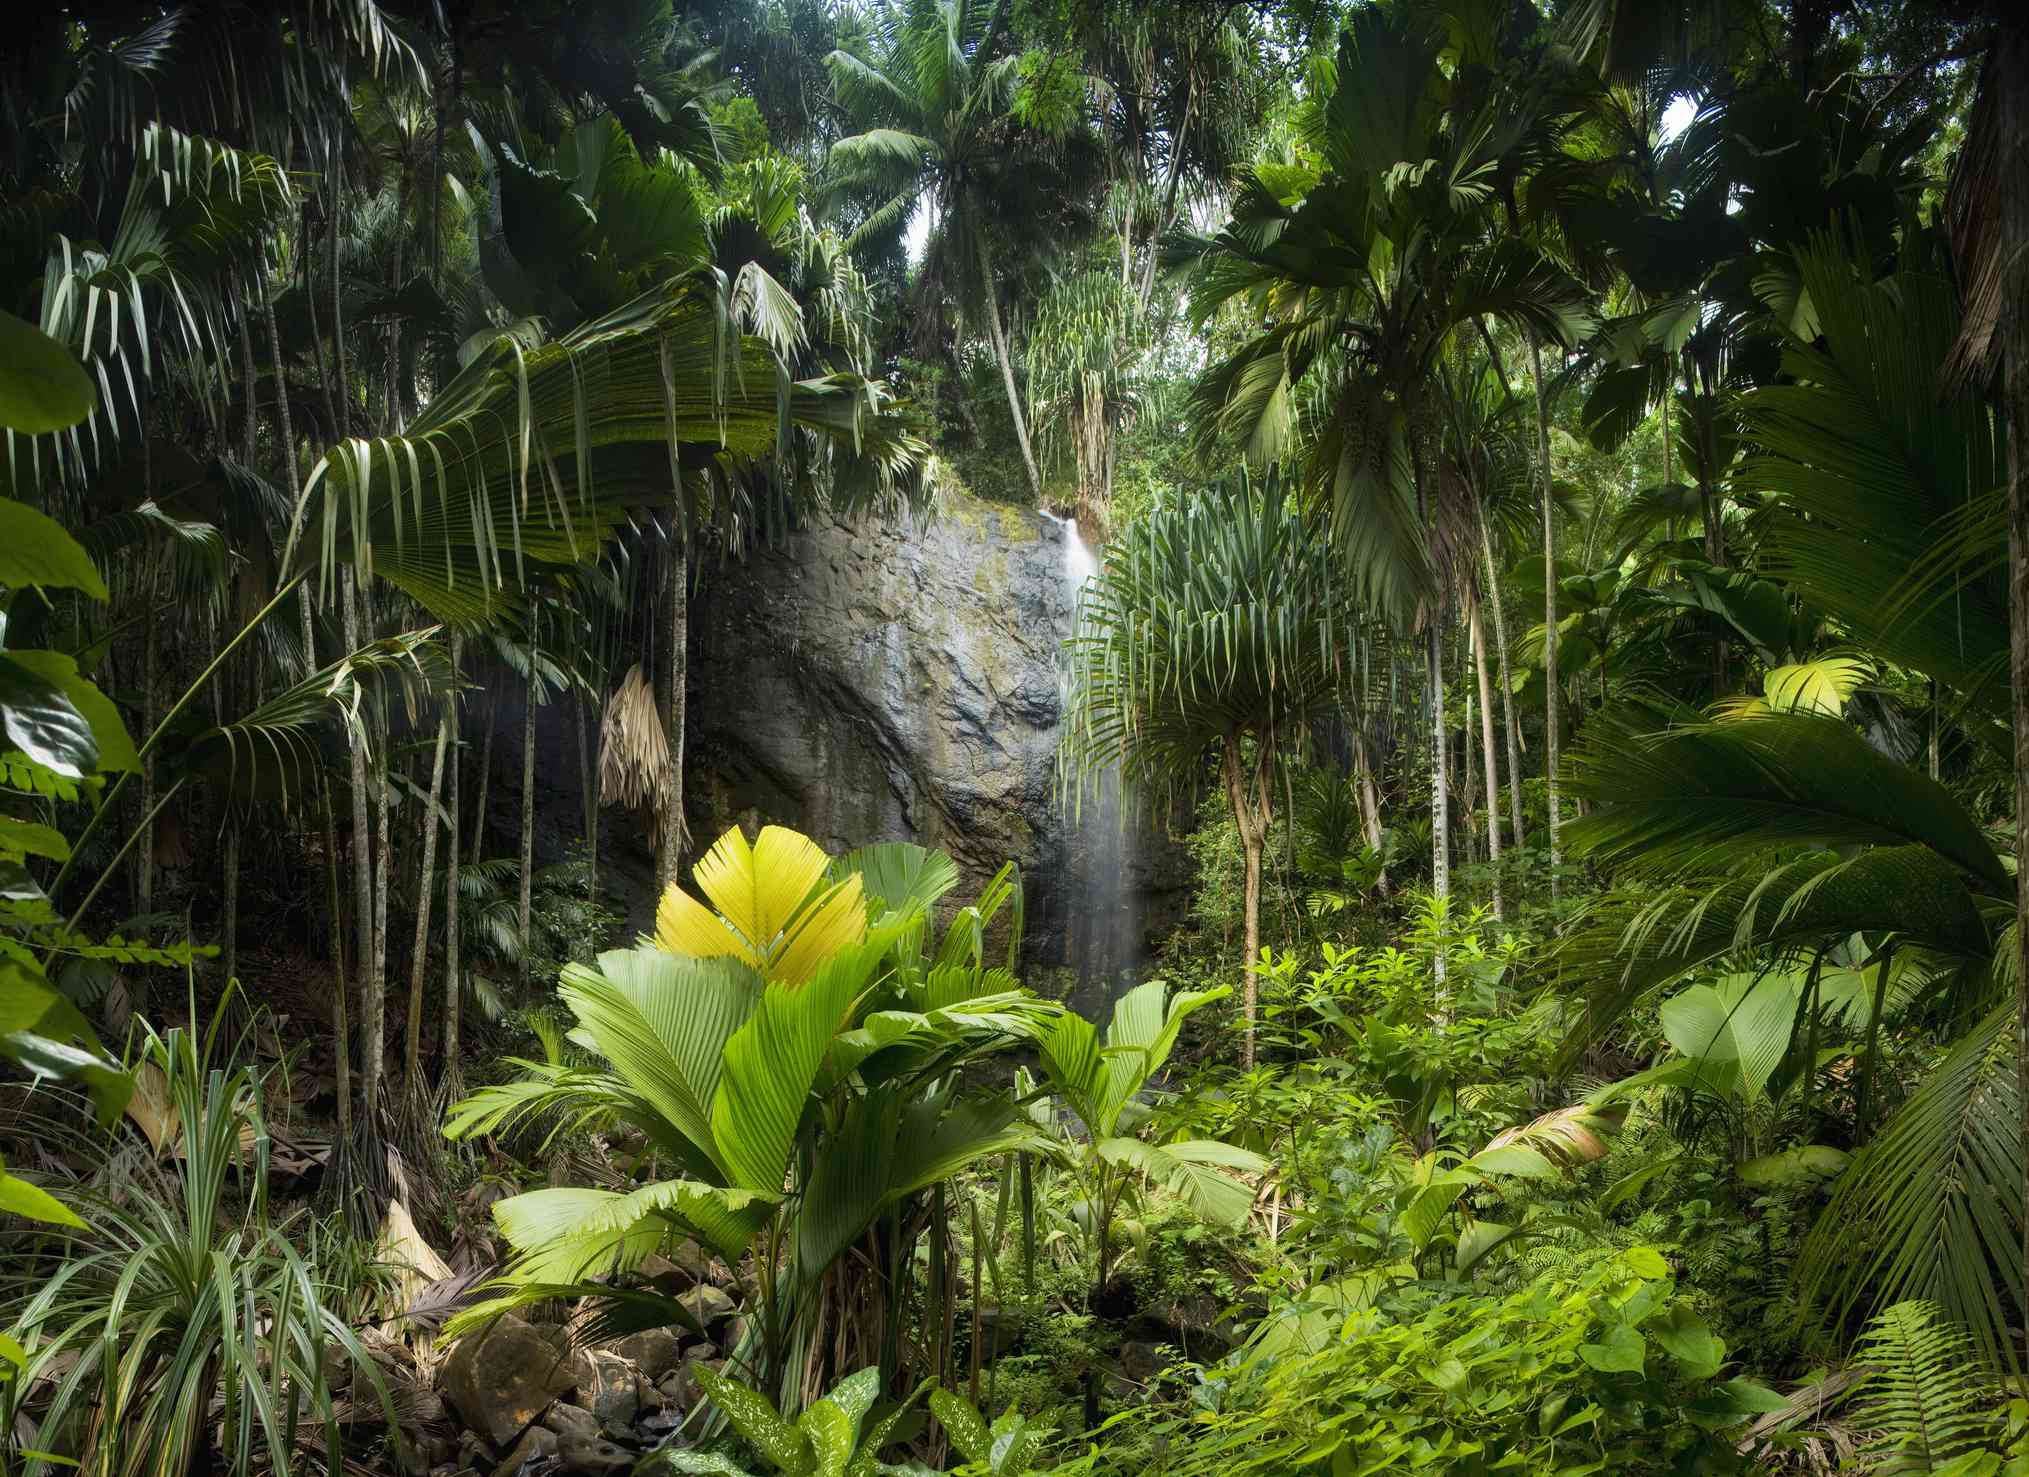 Tropical Rainforest with Waterfall - Vallee de Mai National Park